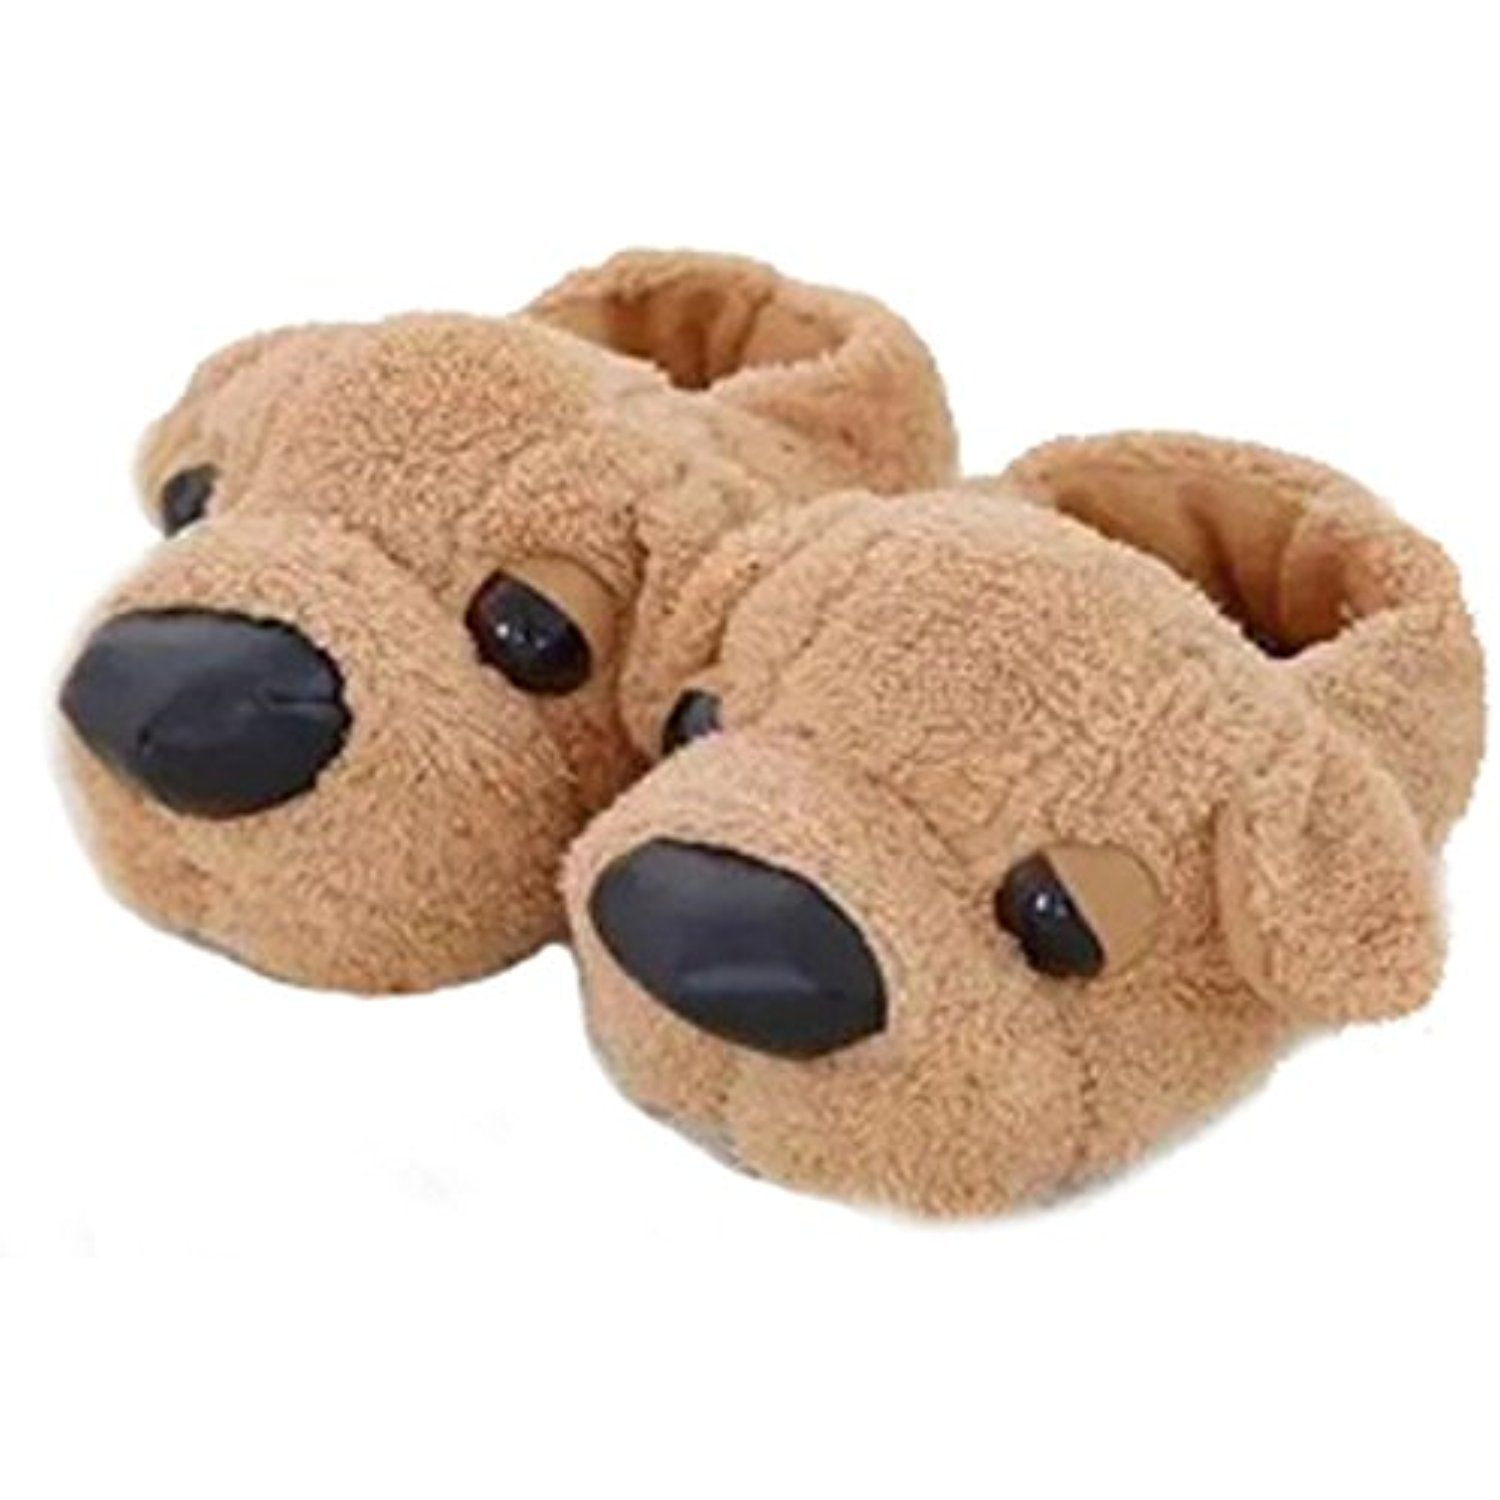 225451c37fc7e Womens Mens Warm Fleece Indoor Slippers, Cute Cartoon Dog Couple Slippers  Soft Plush Cozy Winter Ankle Boots Non-slip Fuzzy Booties Footwear Mules  Bedroom ...